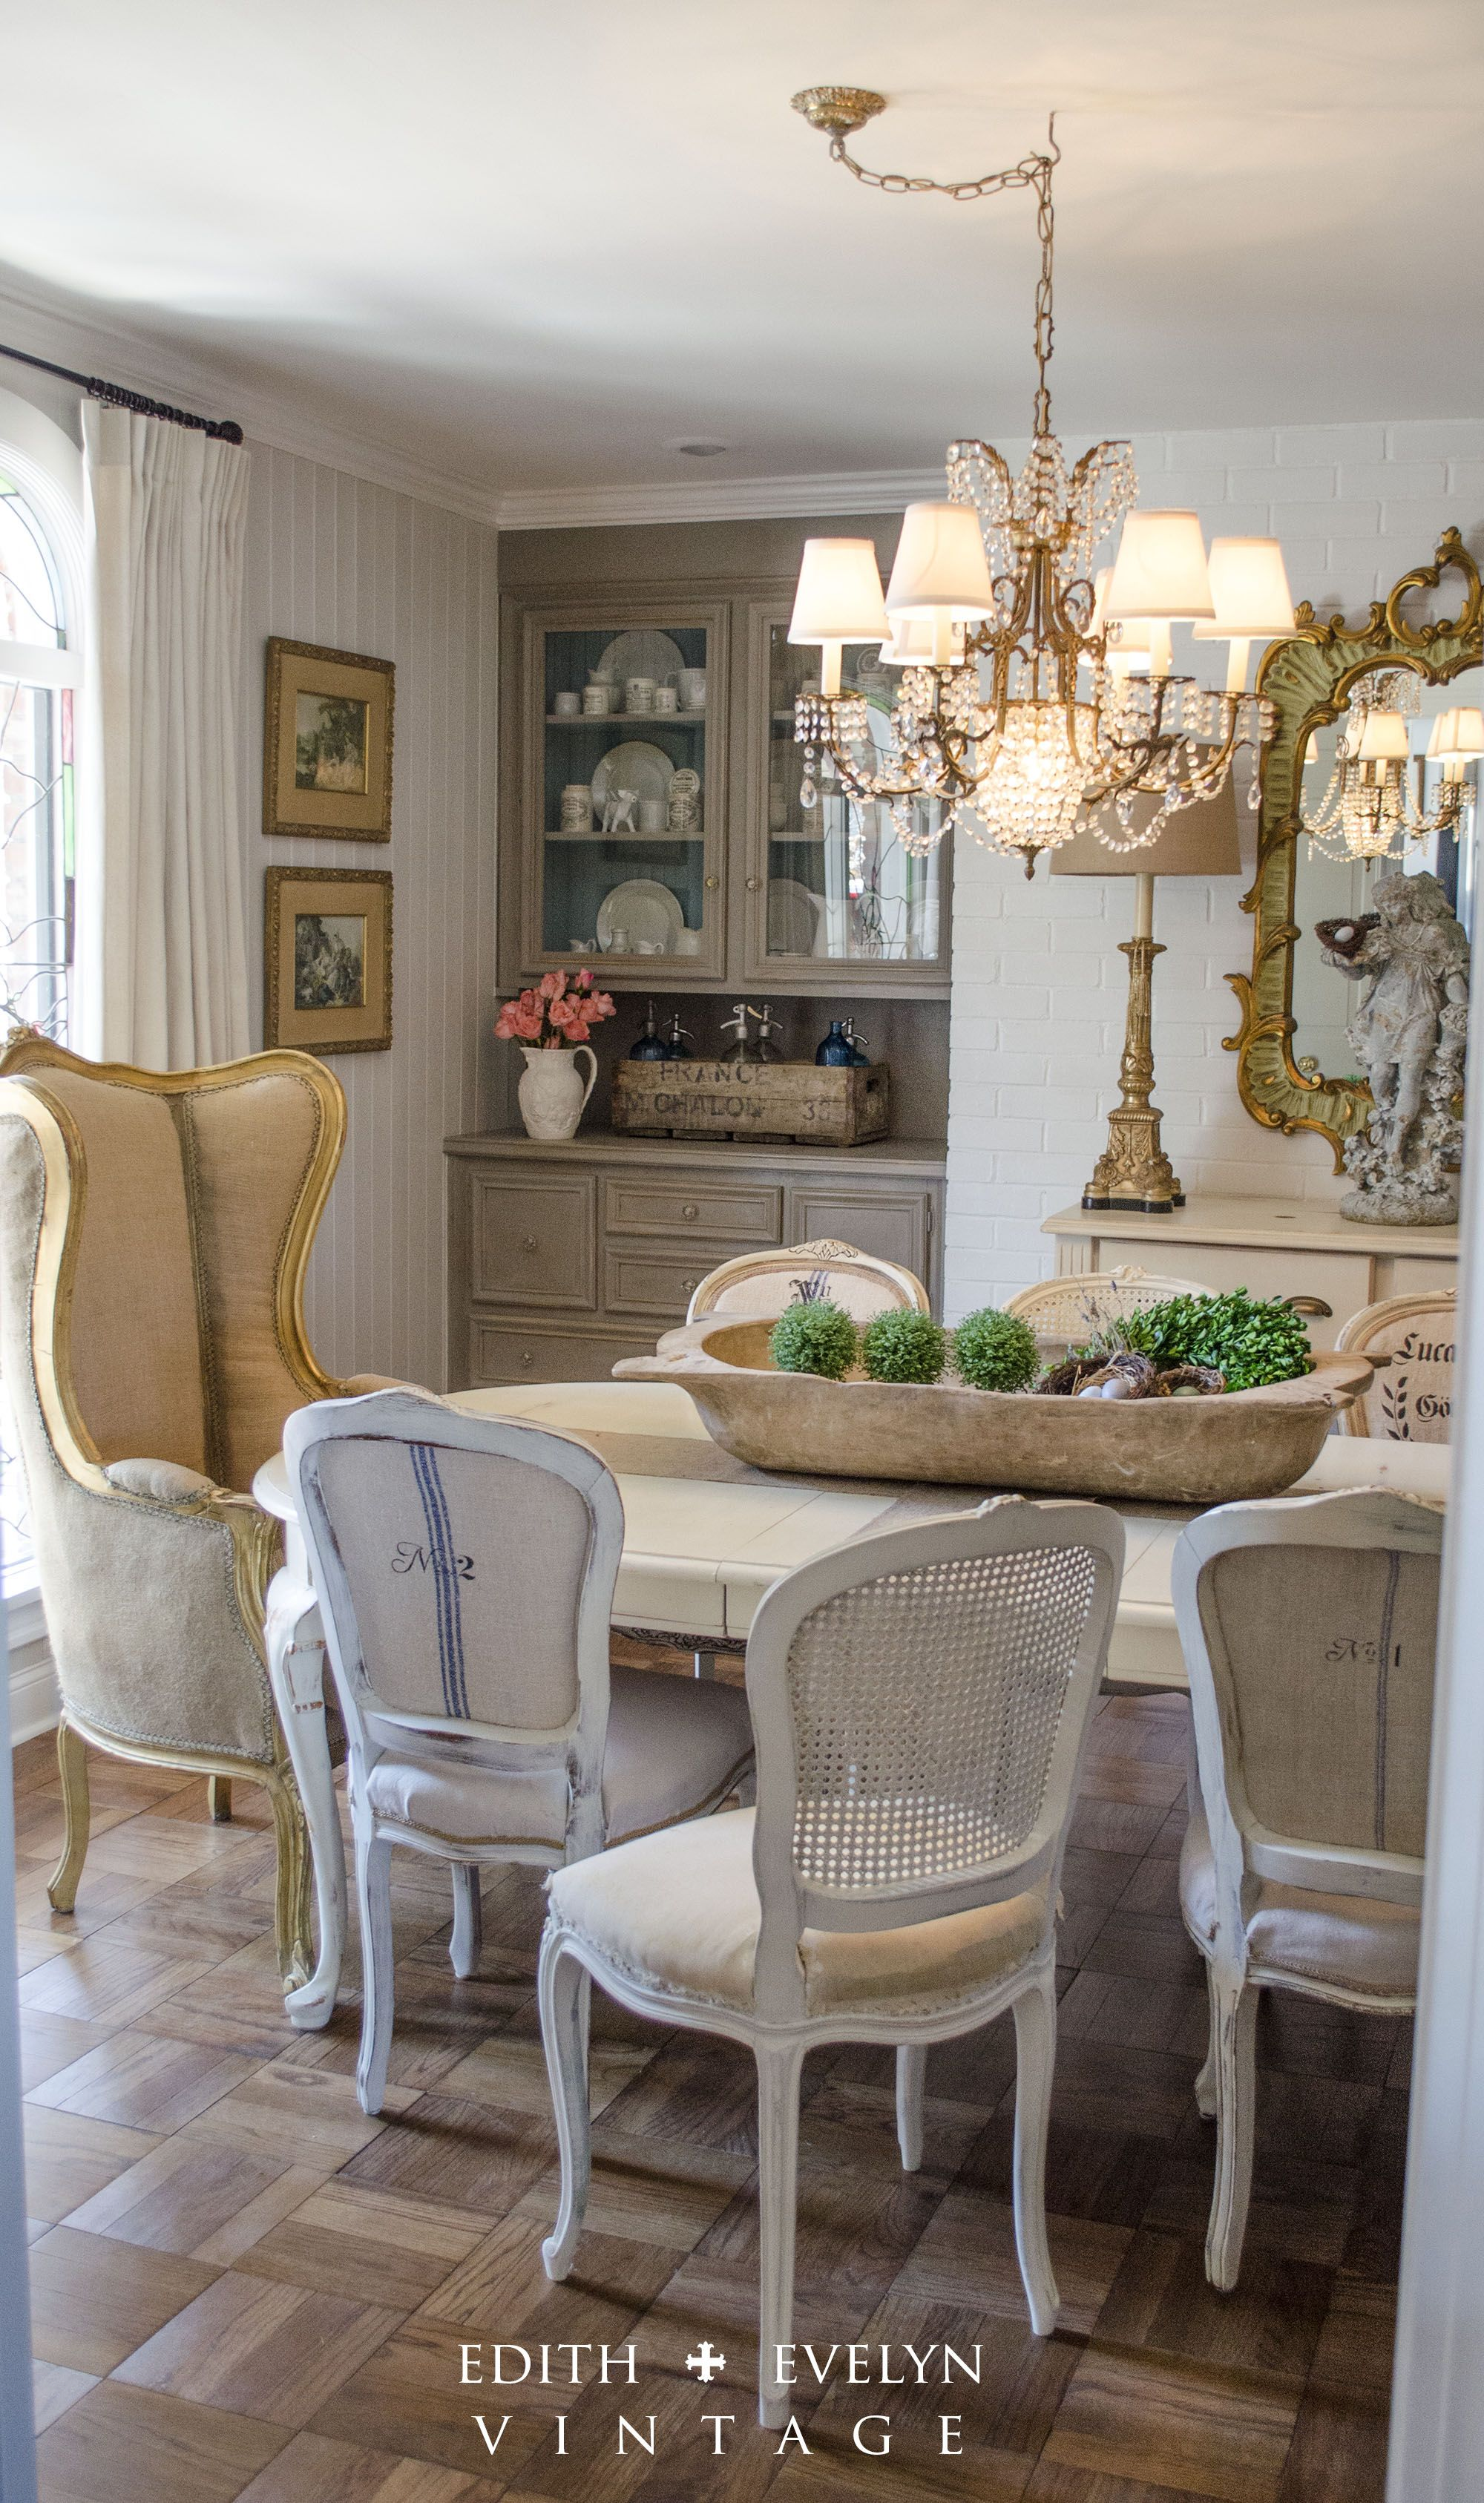 The Dining Room Renovation French Country Dining Room French Country Dining Room Decor French Country Dining Room Furniture